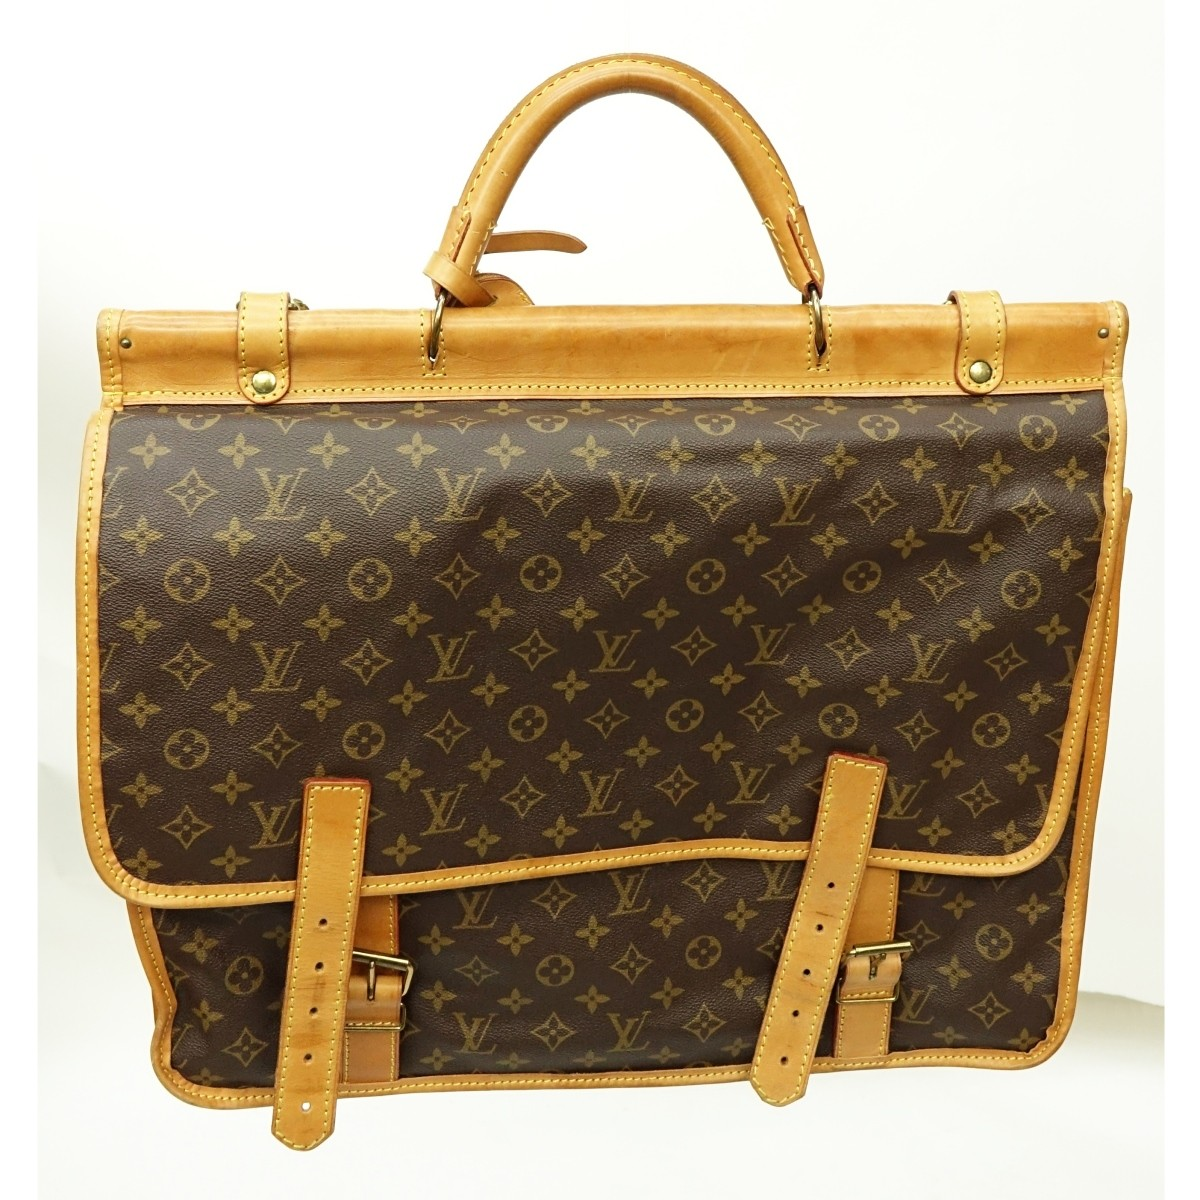 Louis Vuitton Brown Monogram Canvas Sac Kleber